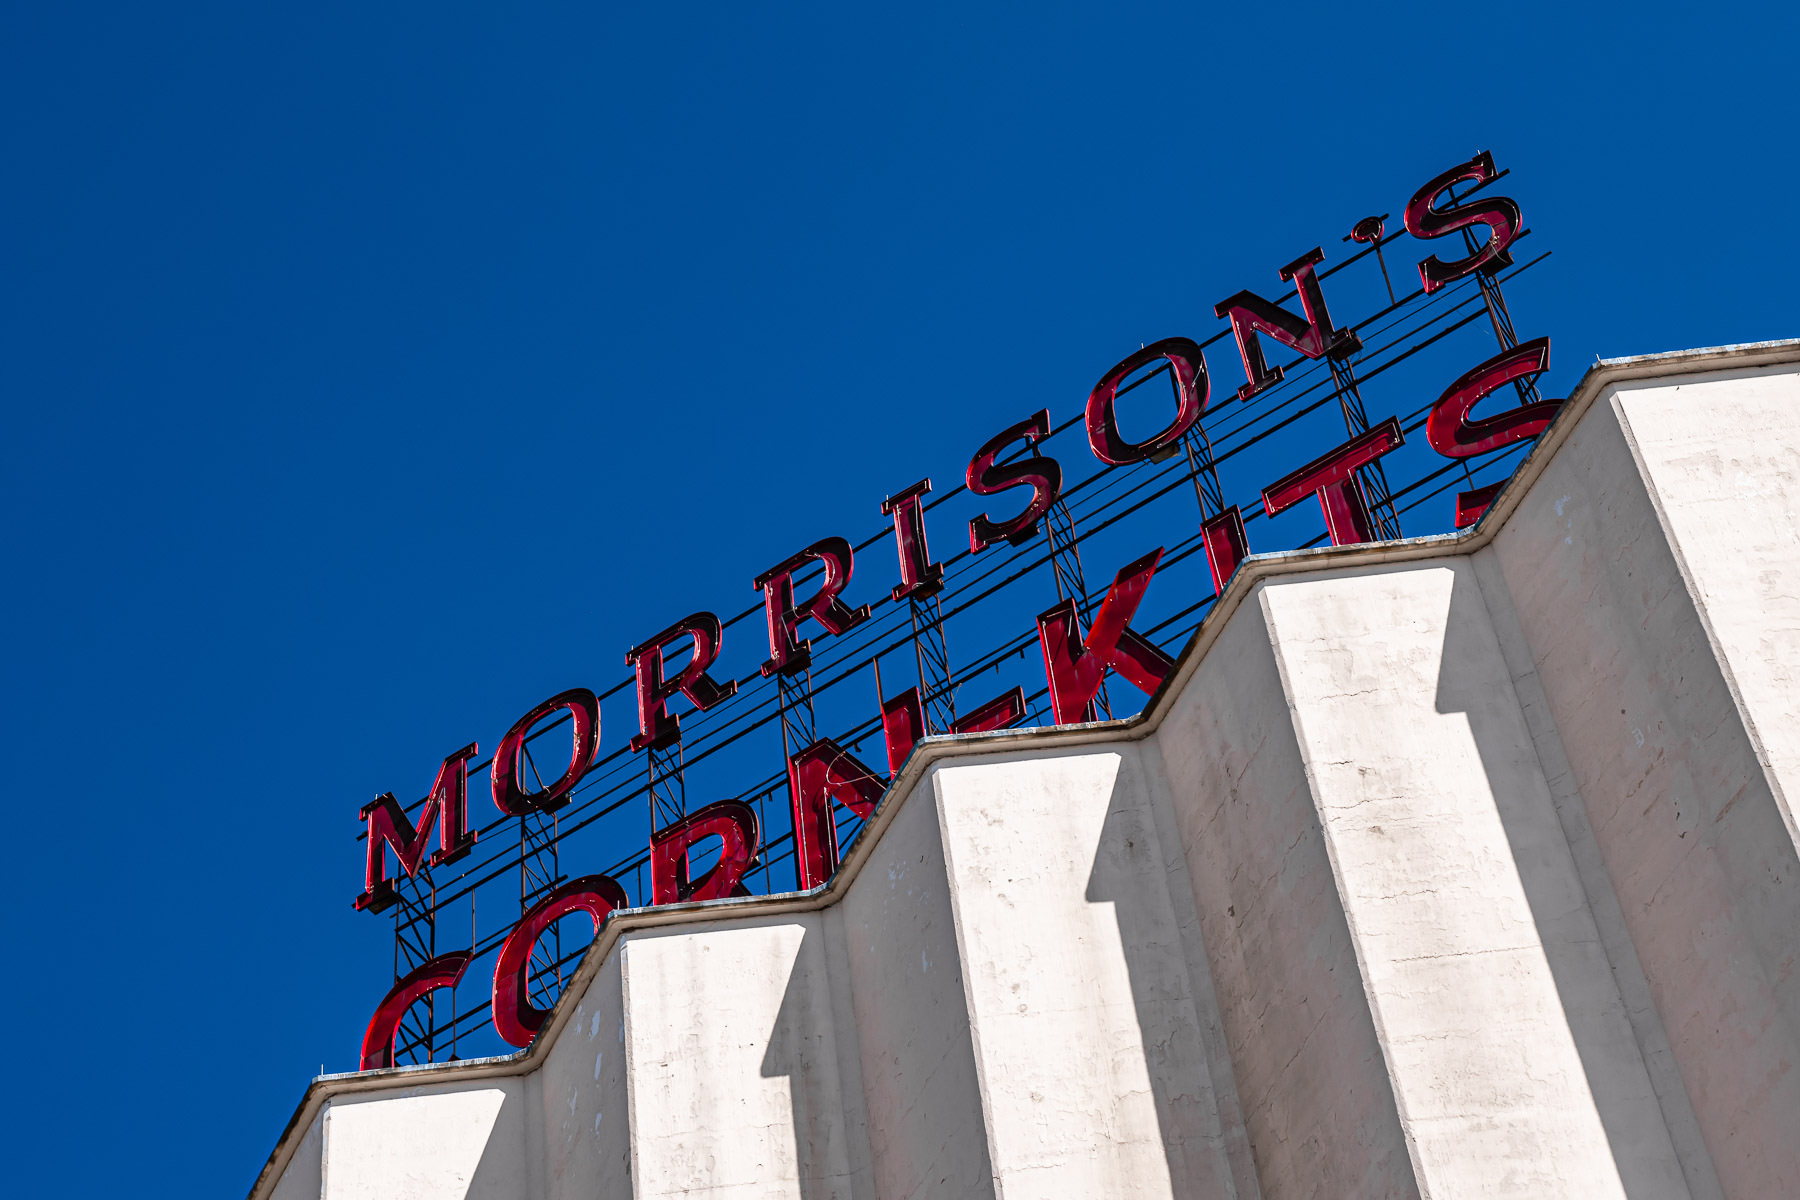 A sign for Morrison's Corn-Kits atop a Denton, Texas, grain elevator.